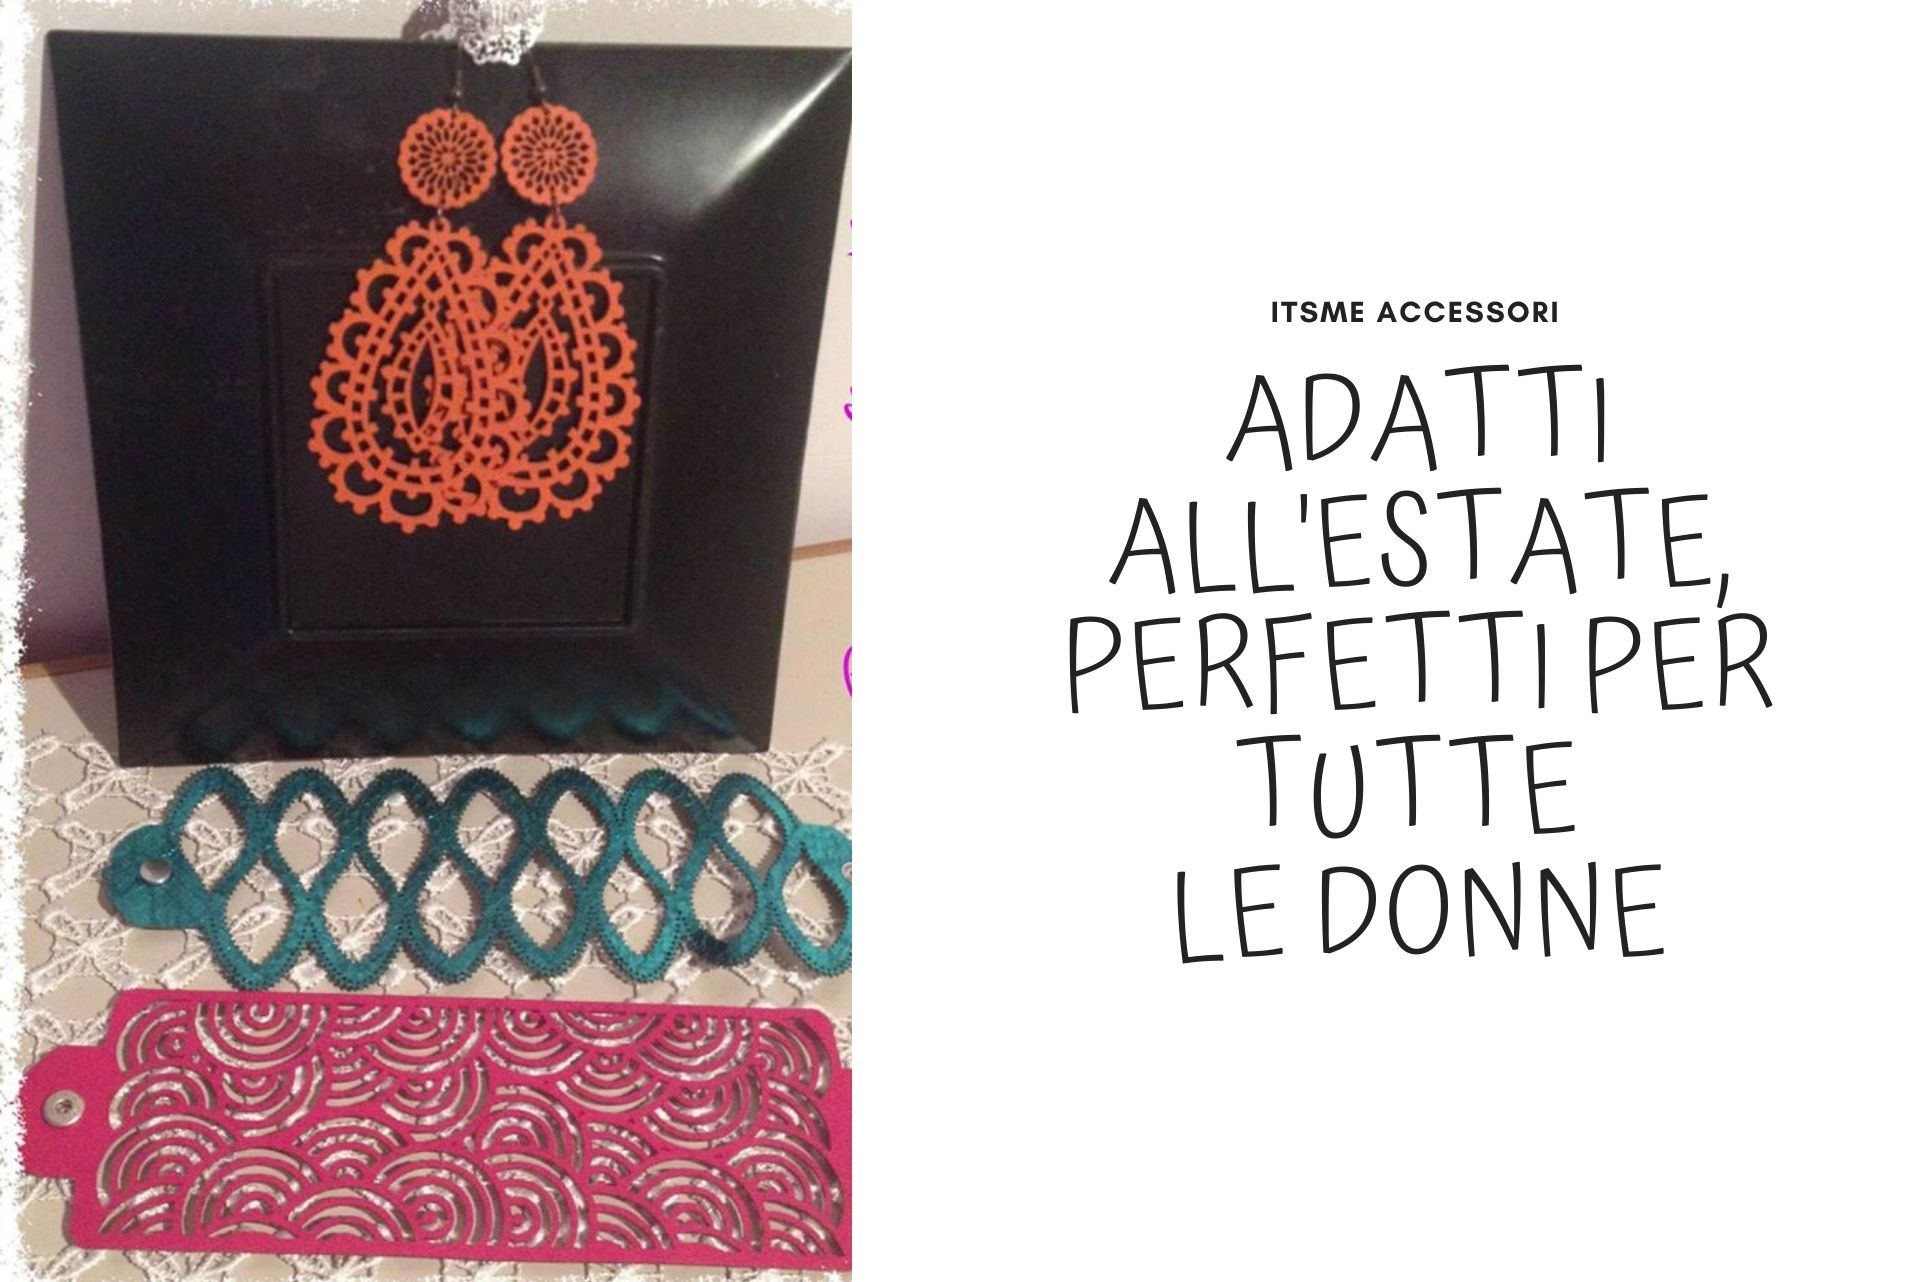 ITSME accessori adatti all'estate, perfetti per tutte le donne